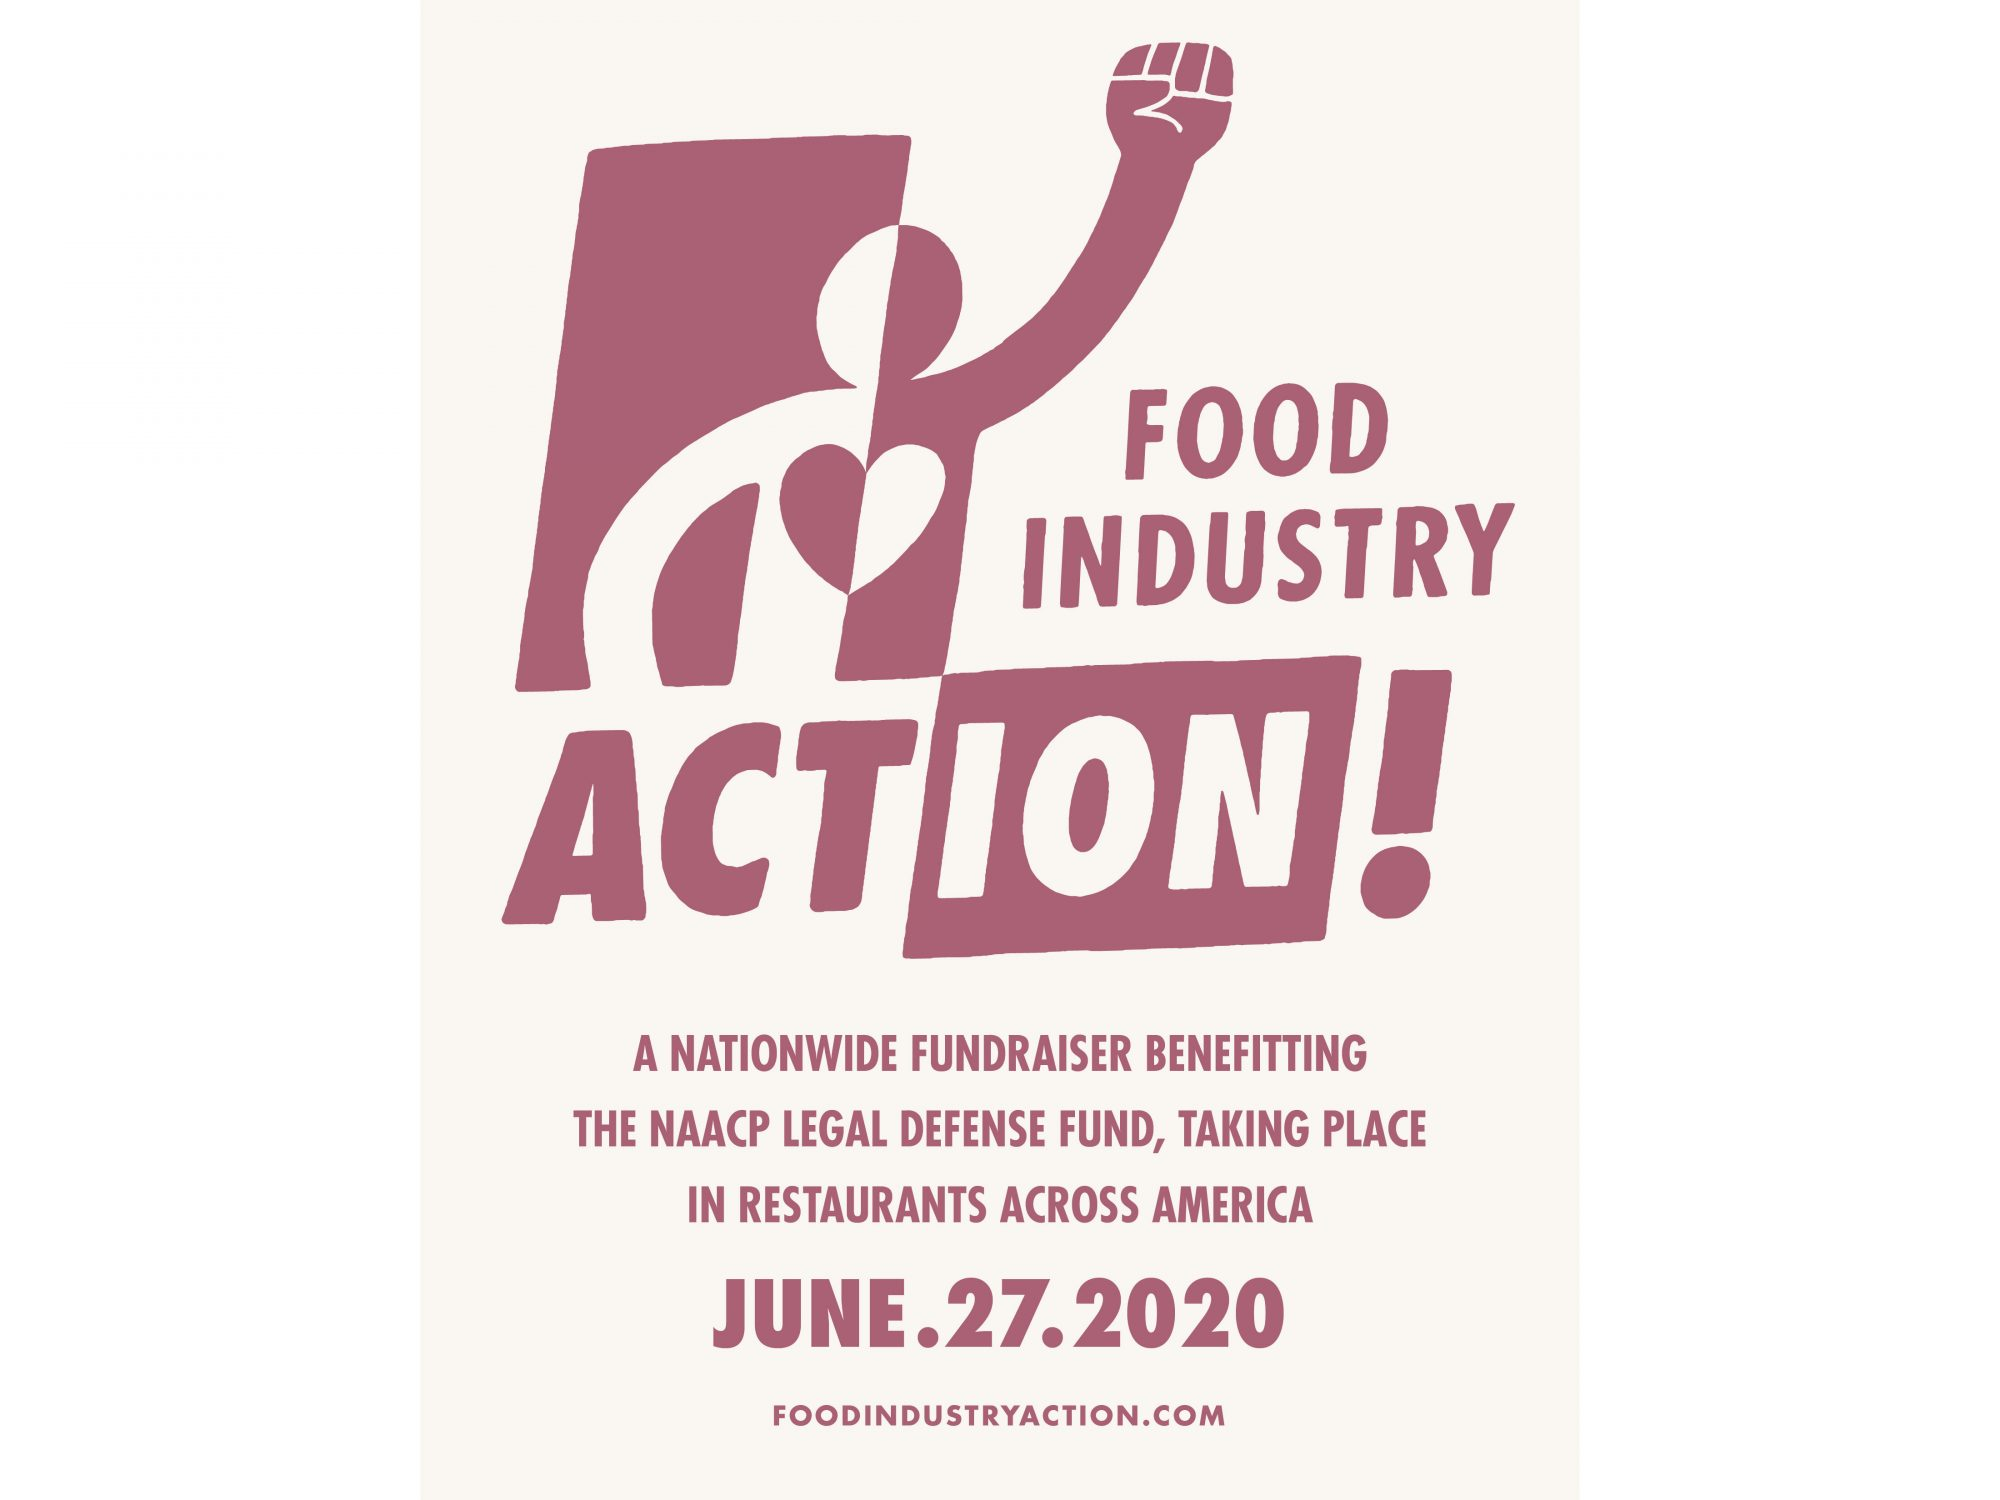 Food Industry Action Fundraiser